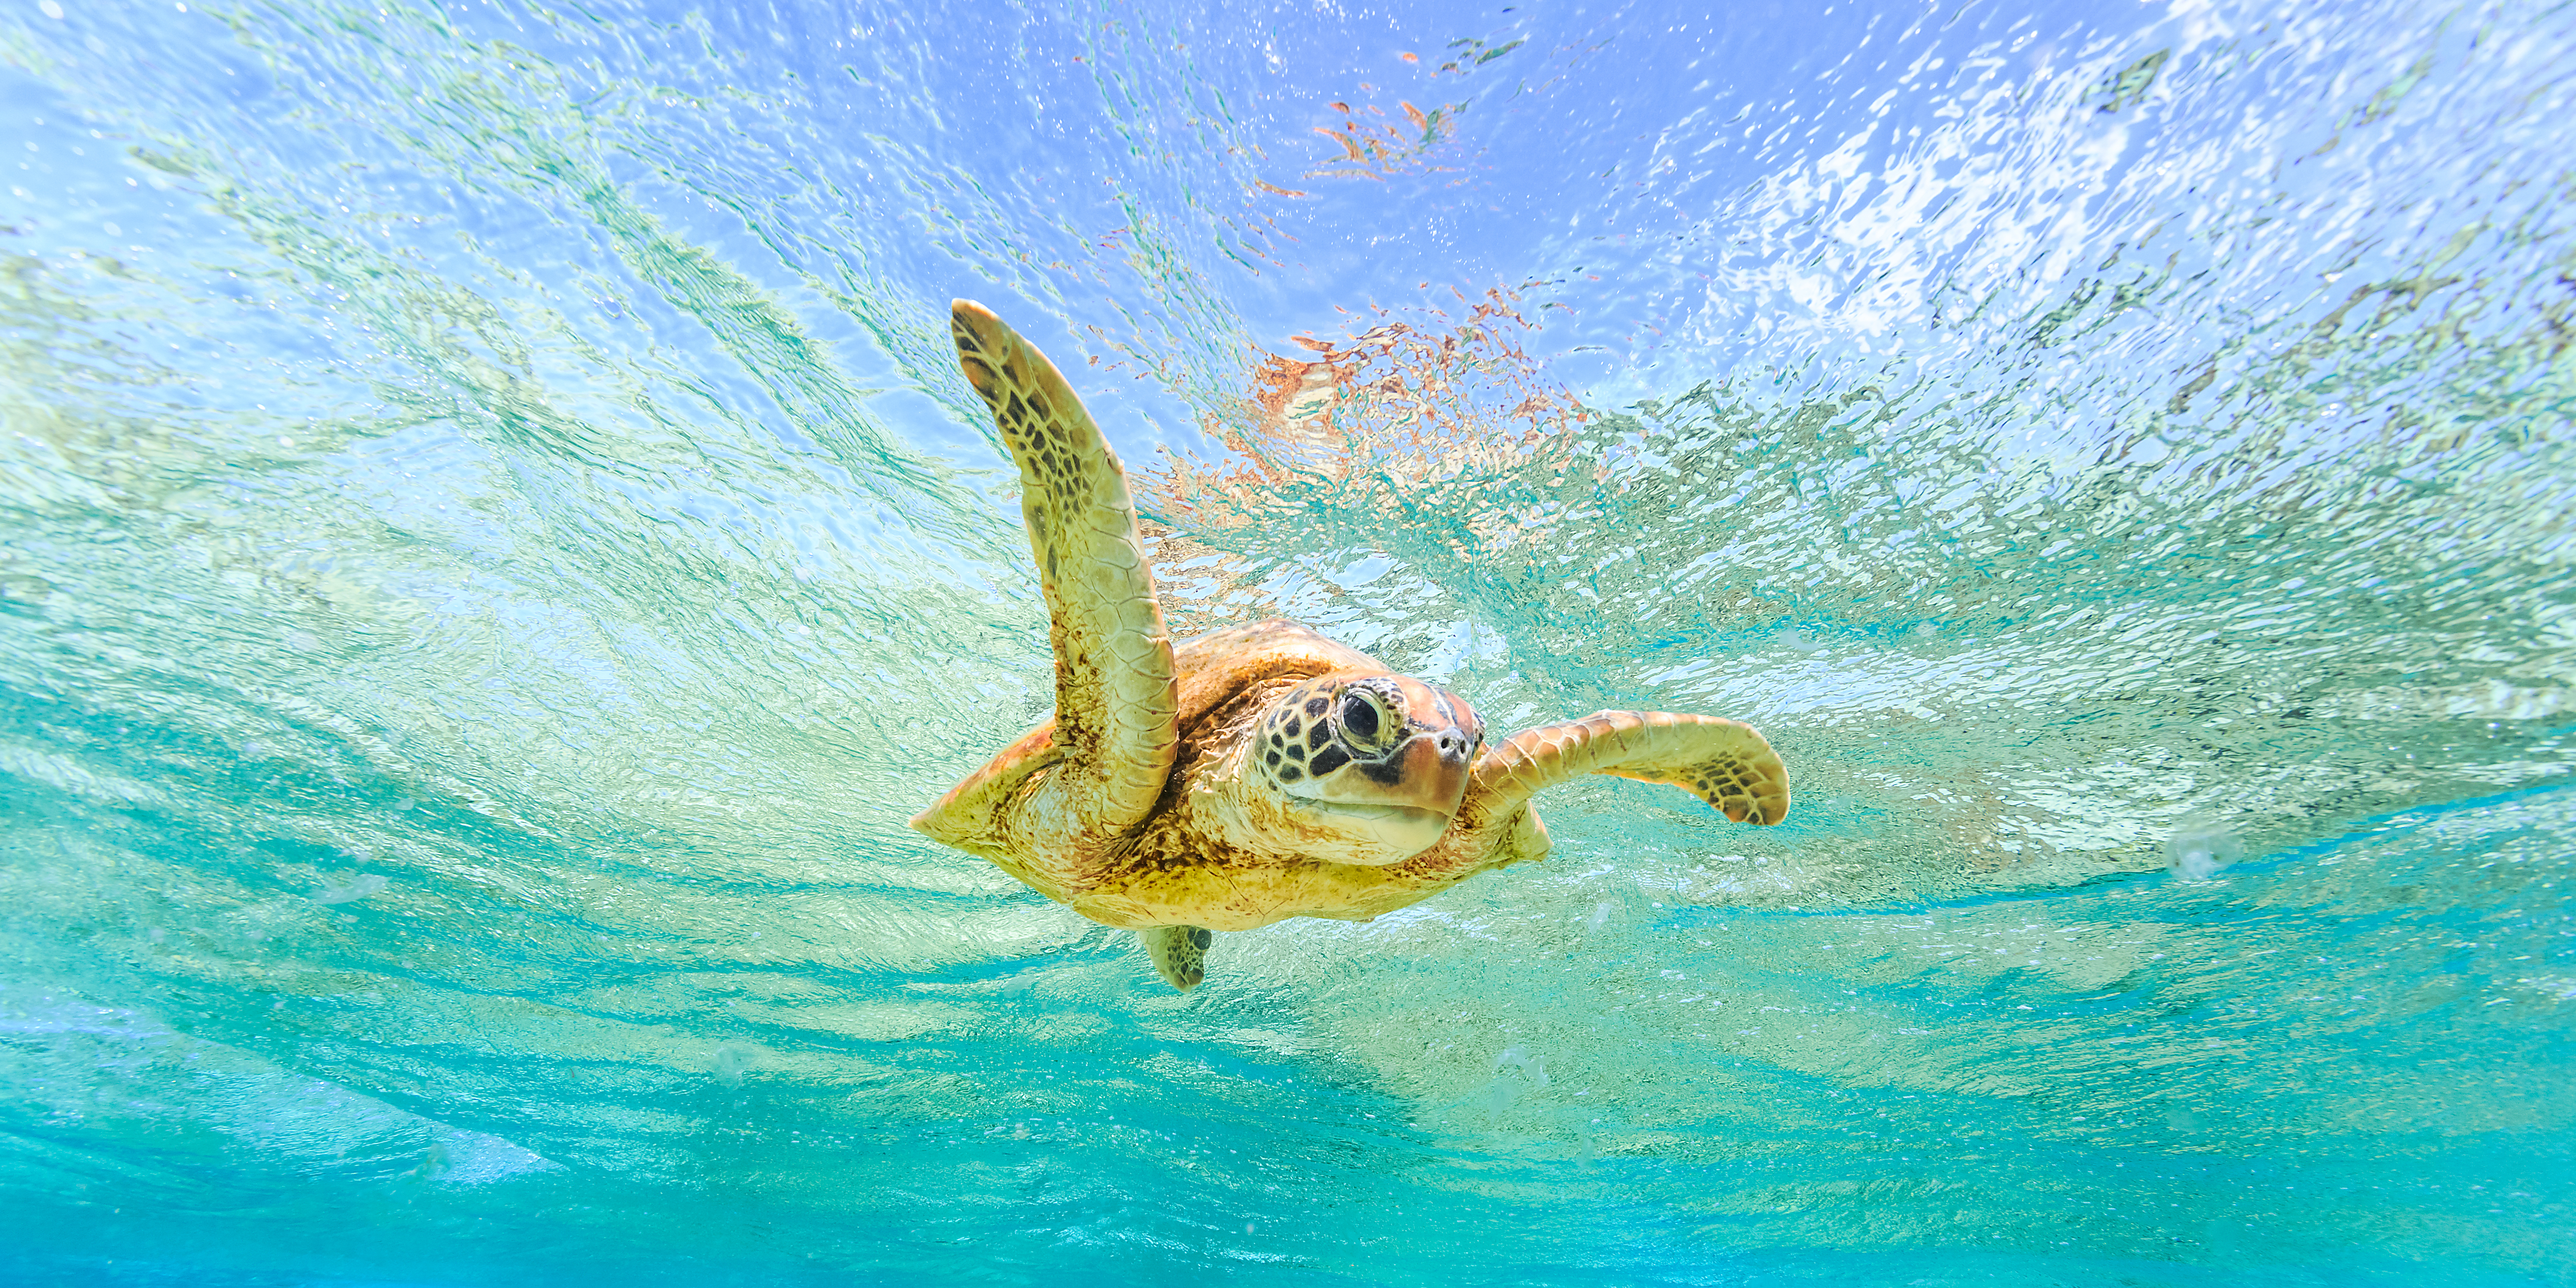 These waters teem with marine life, including an abundance of turtles and dugong